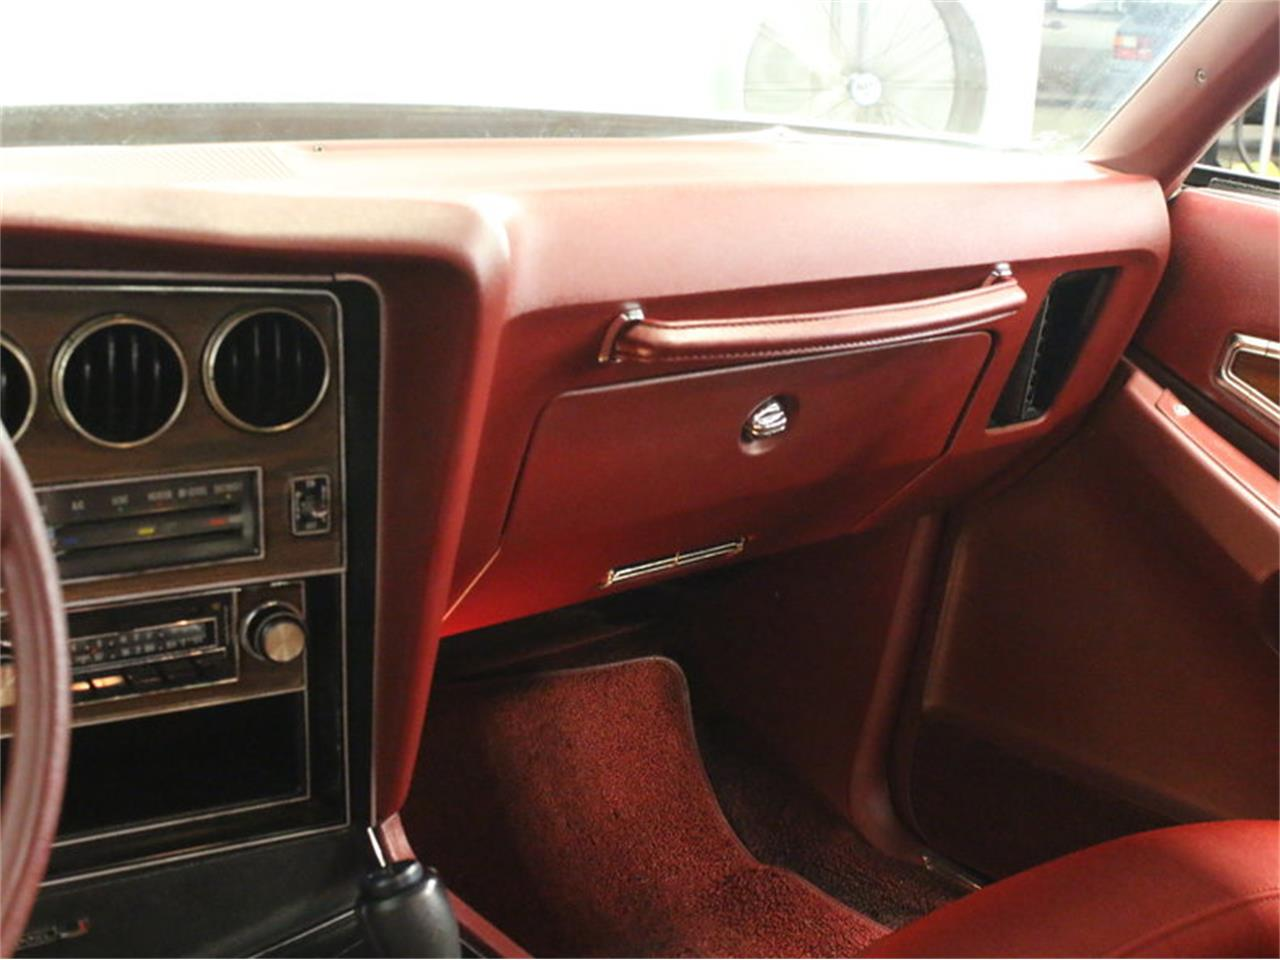 Large Picture of '73 Pontiac Grand Prix Model J located in Texas - $13,995.00 Offered by Streetside Classics - Dallas / Fort Worth - L2N9